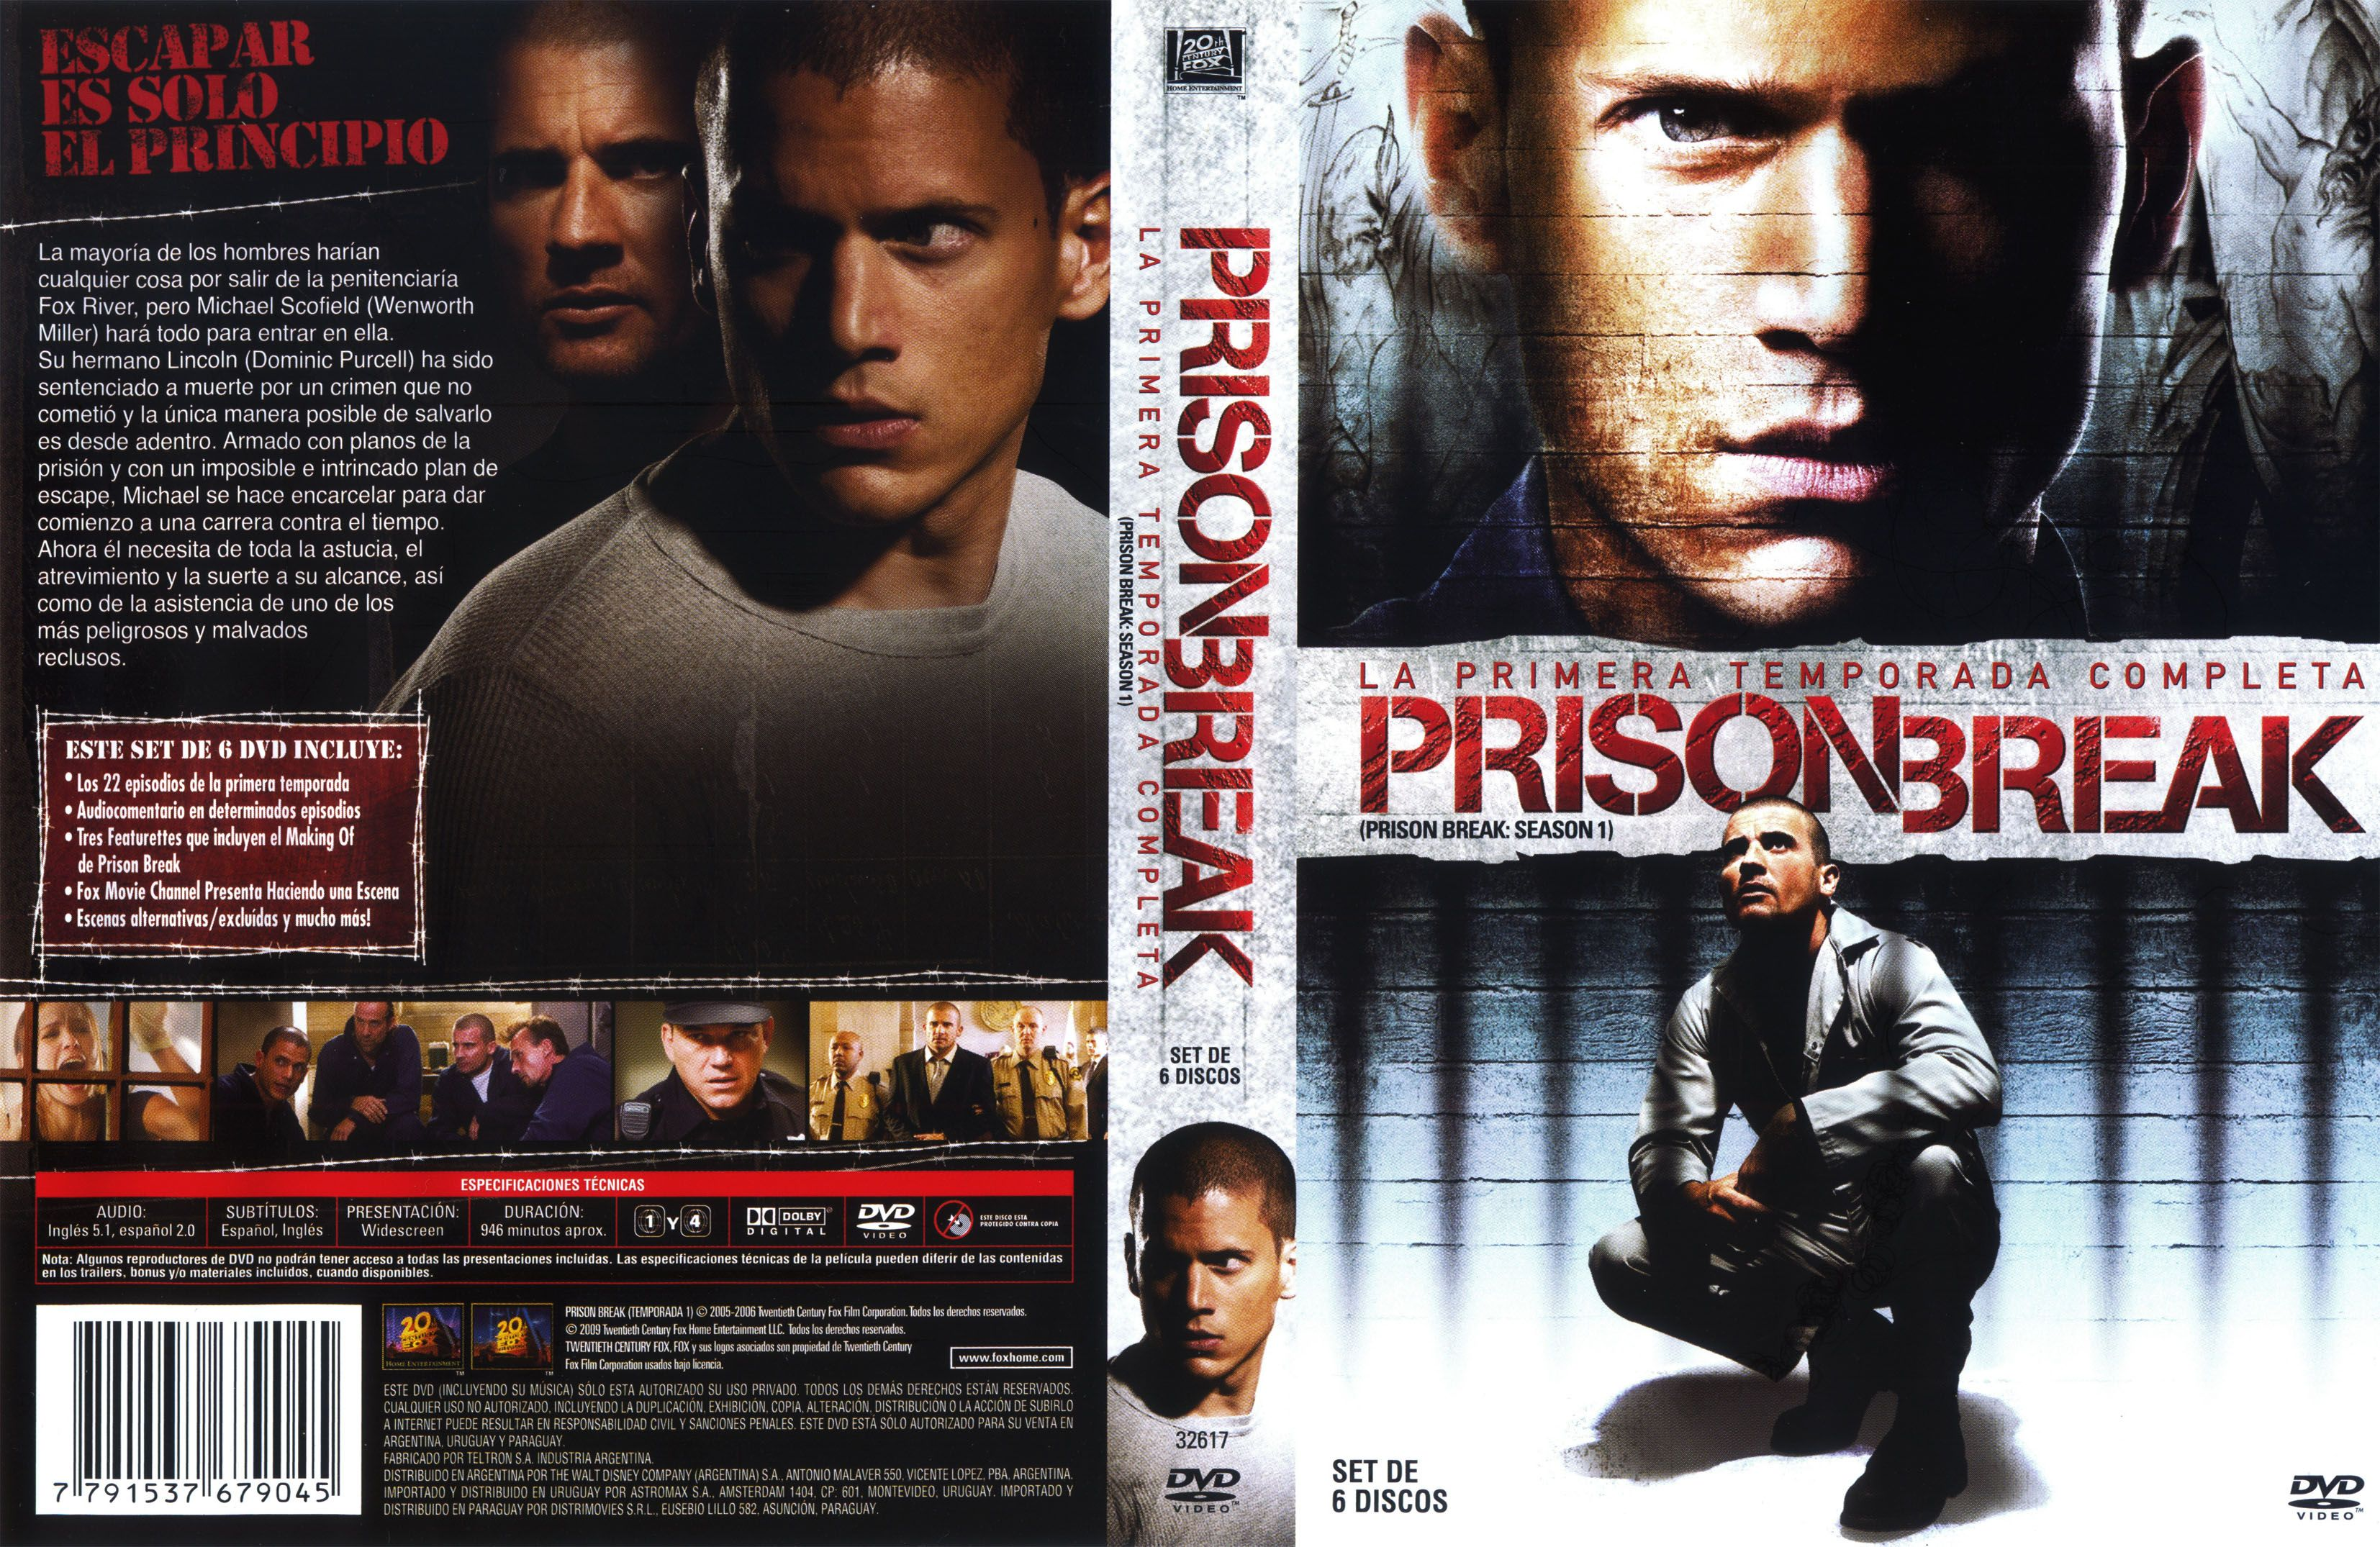 Covers Box Sk Prison Break Season 1 Box Set High Quality Dvd Blueray Movie